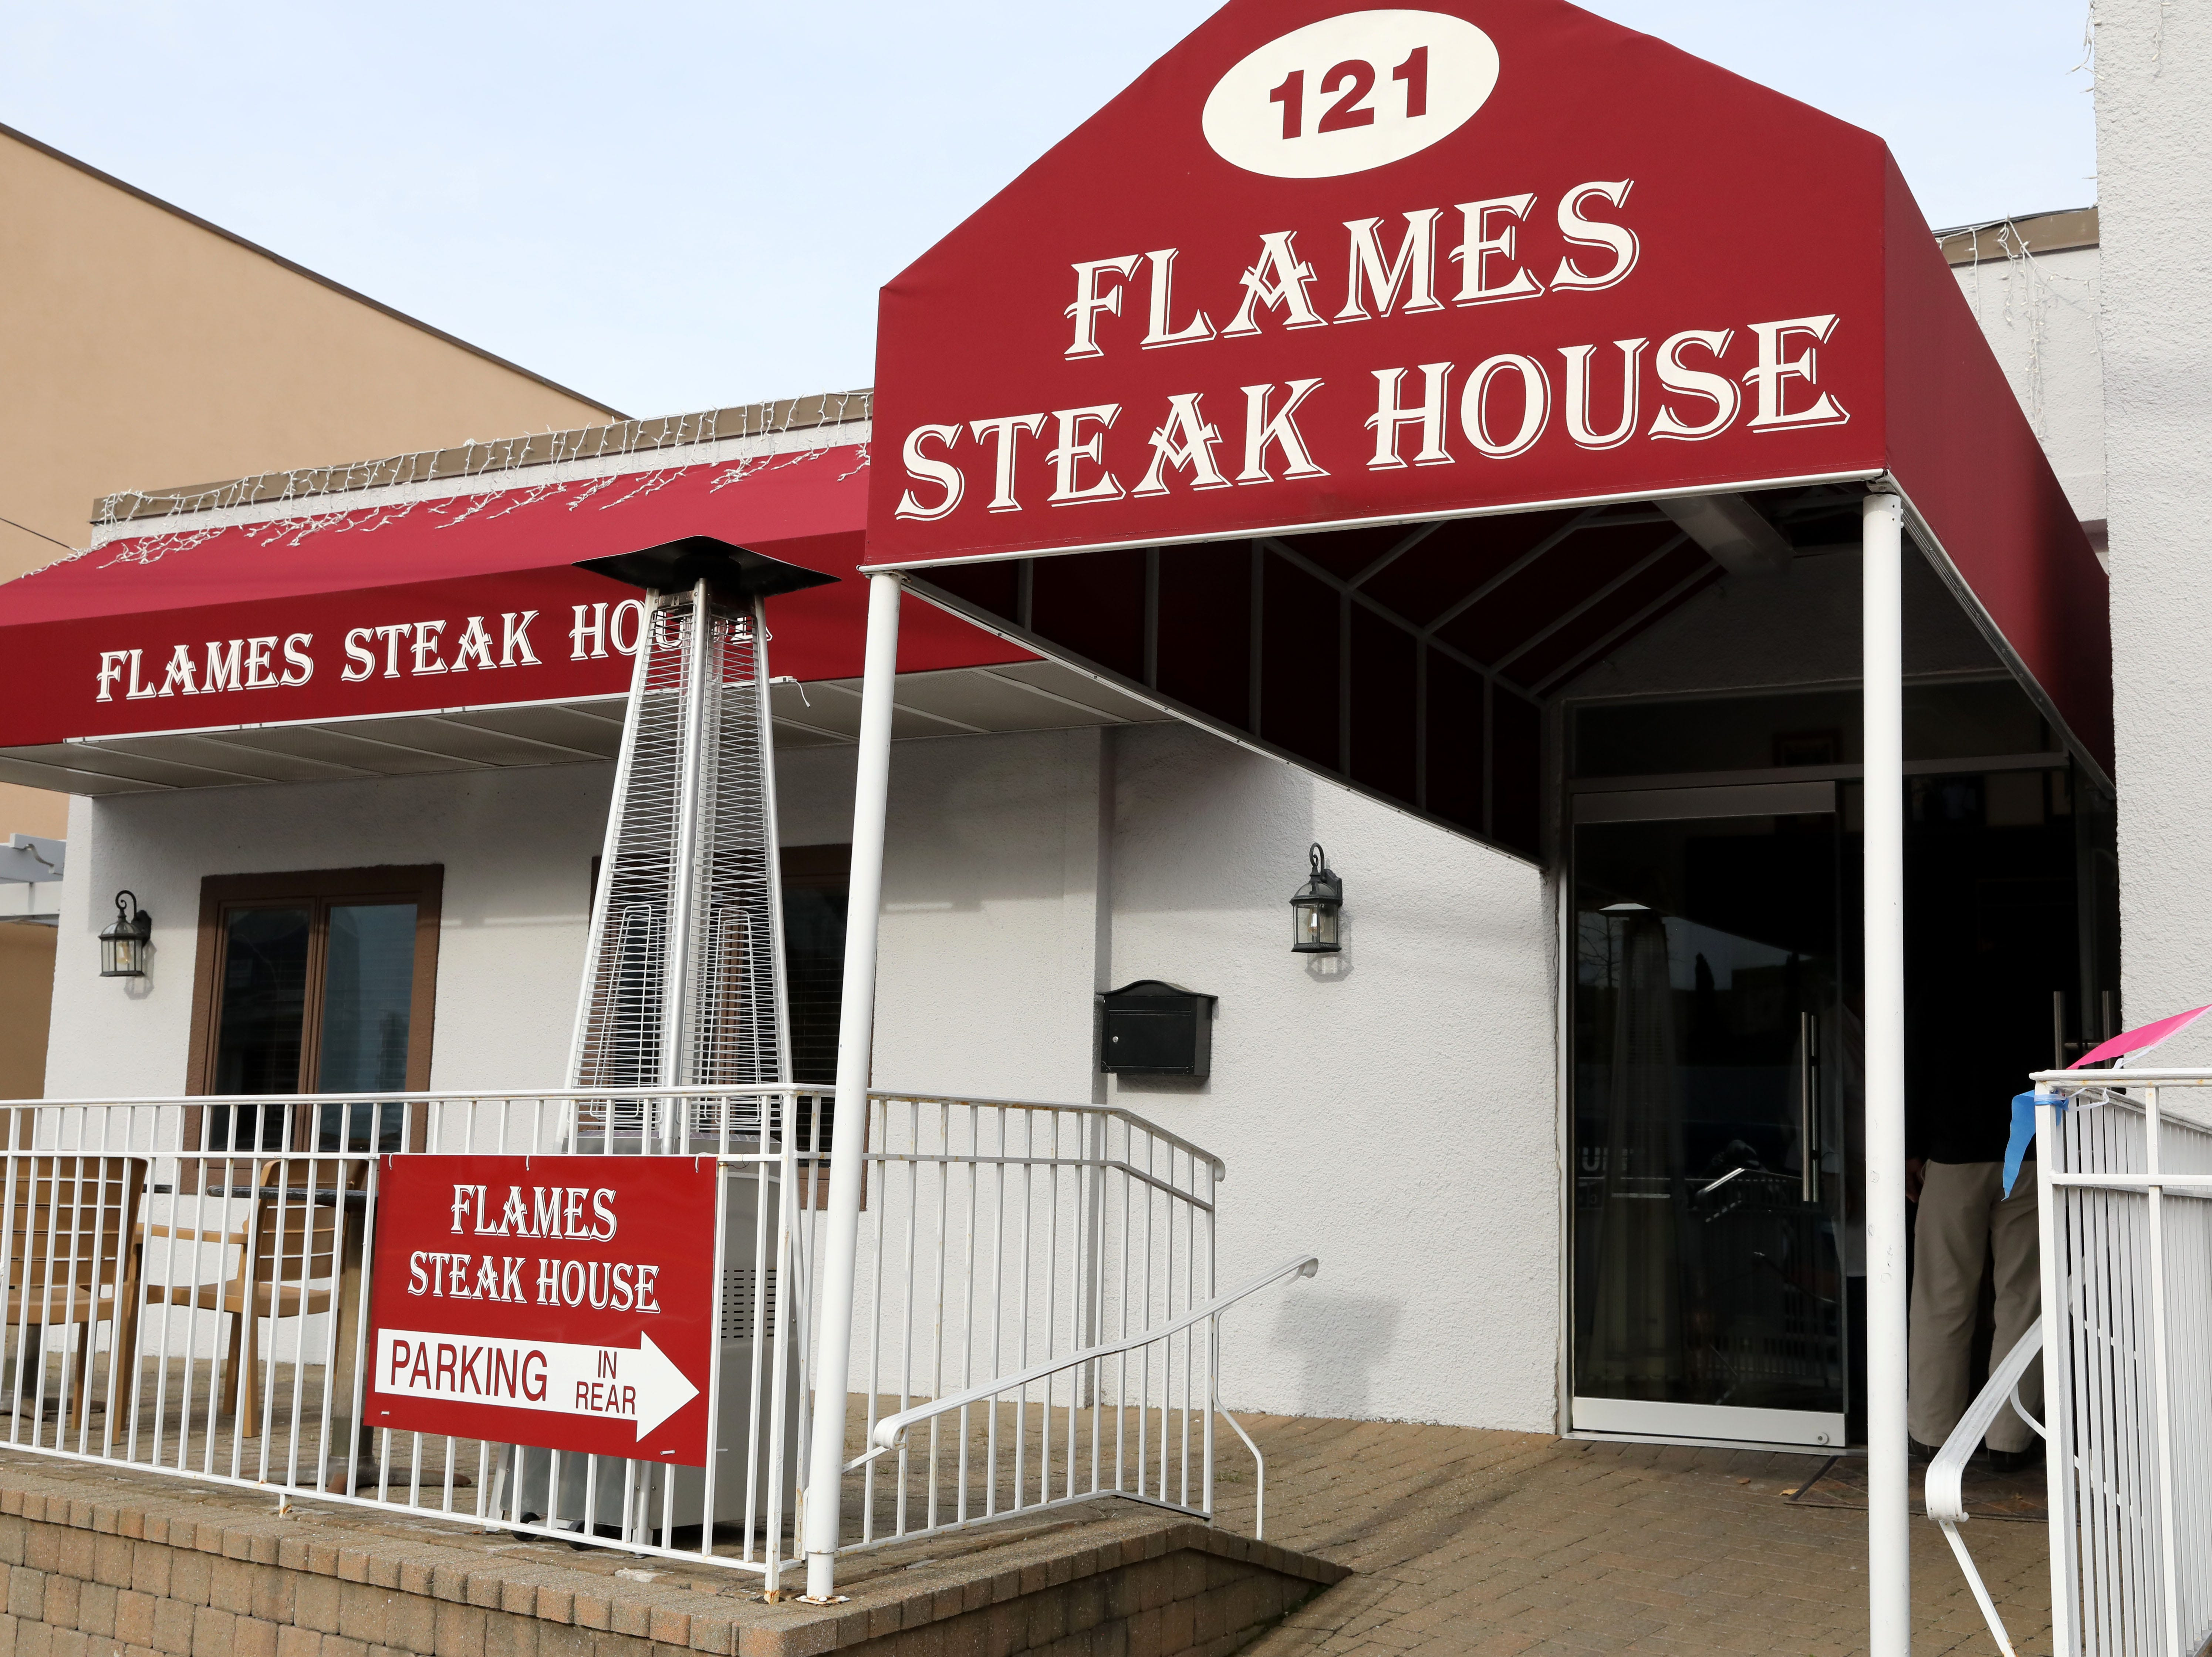 Flames Steakhouse in Elmsford Nov. 12, 2018.